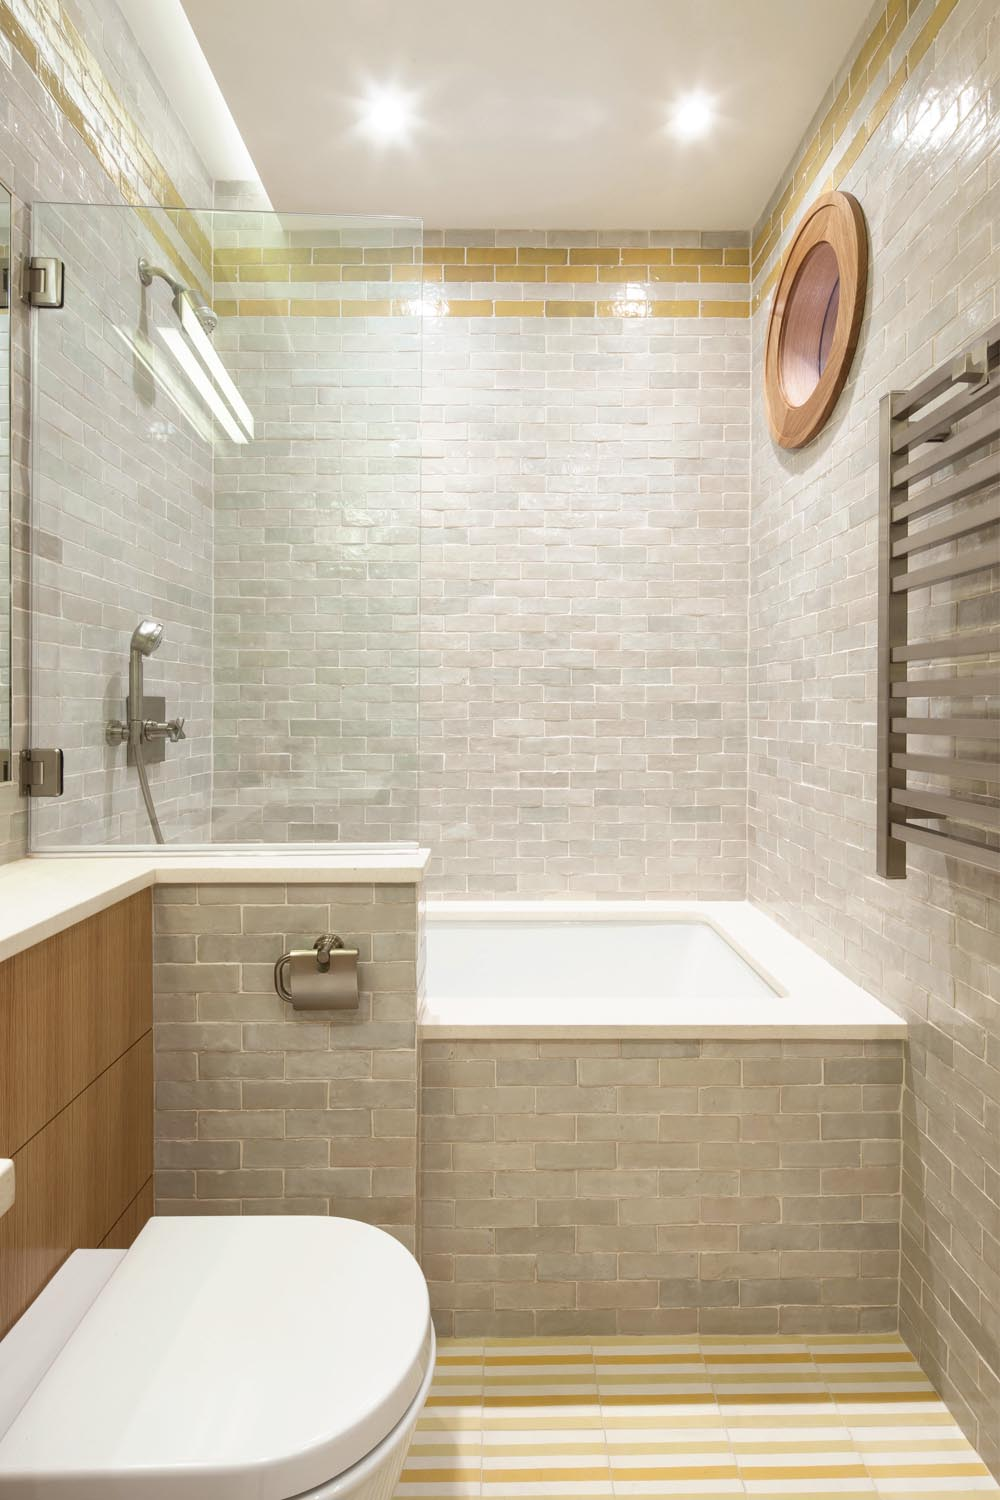 We love: The textured tiles in the bathroom — a great way to introduce interest without colour